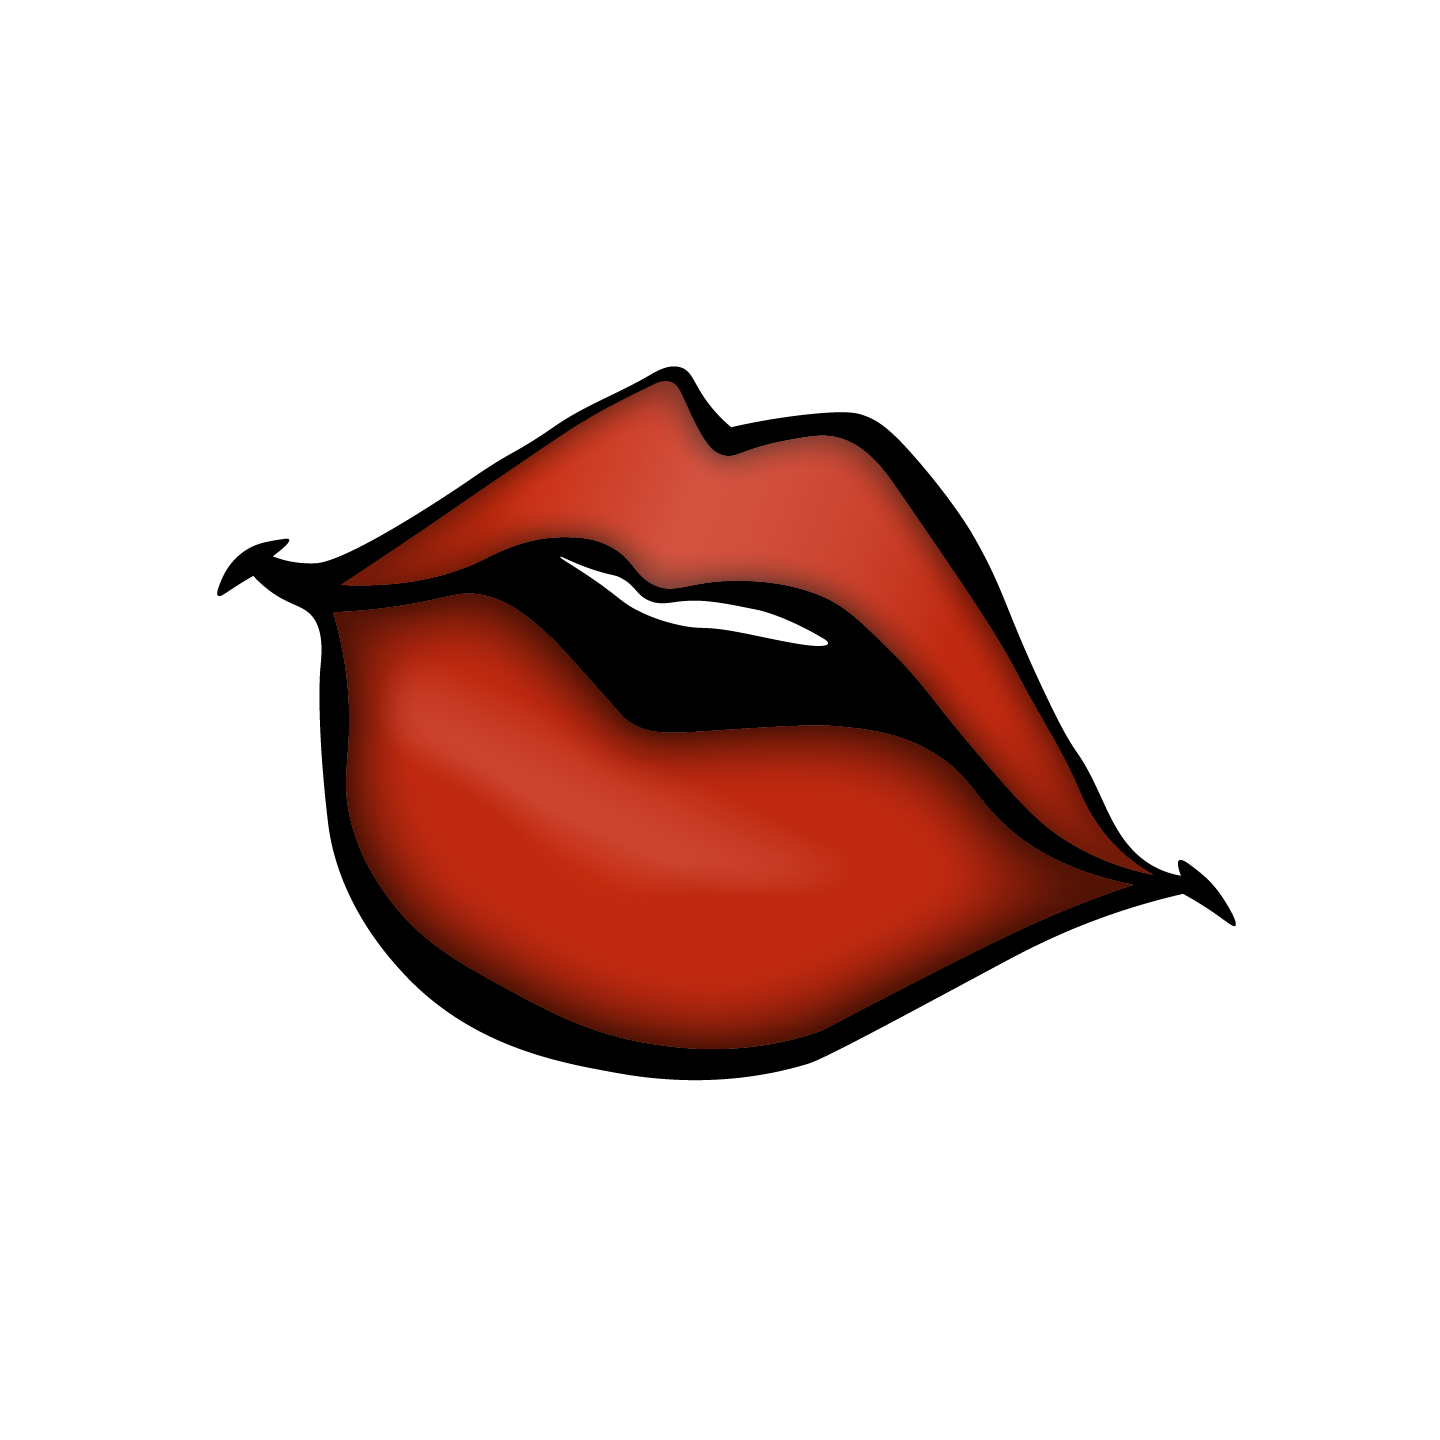 Lips clipart logo. Laura ruesch project feel